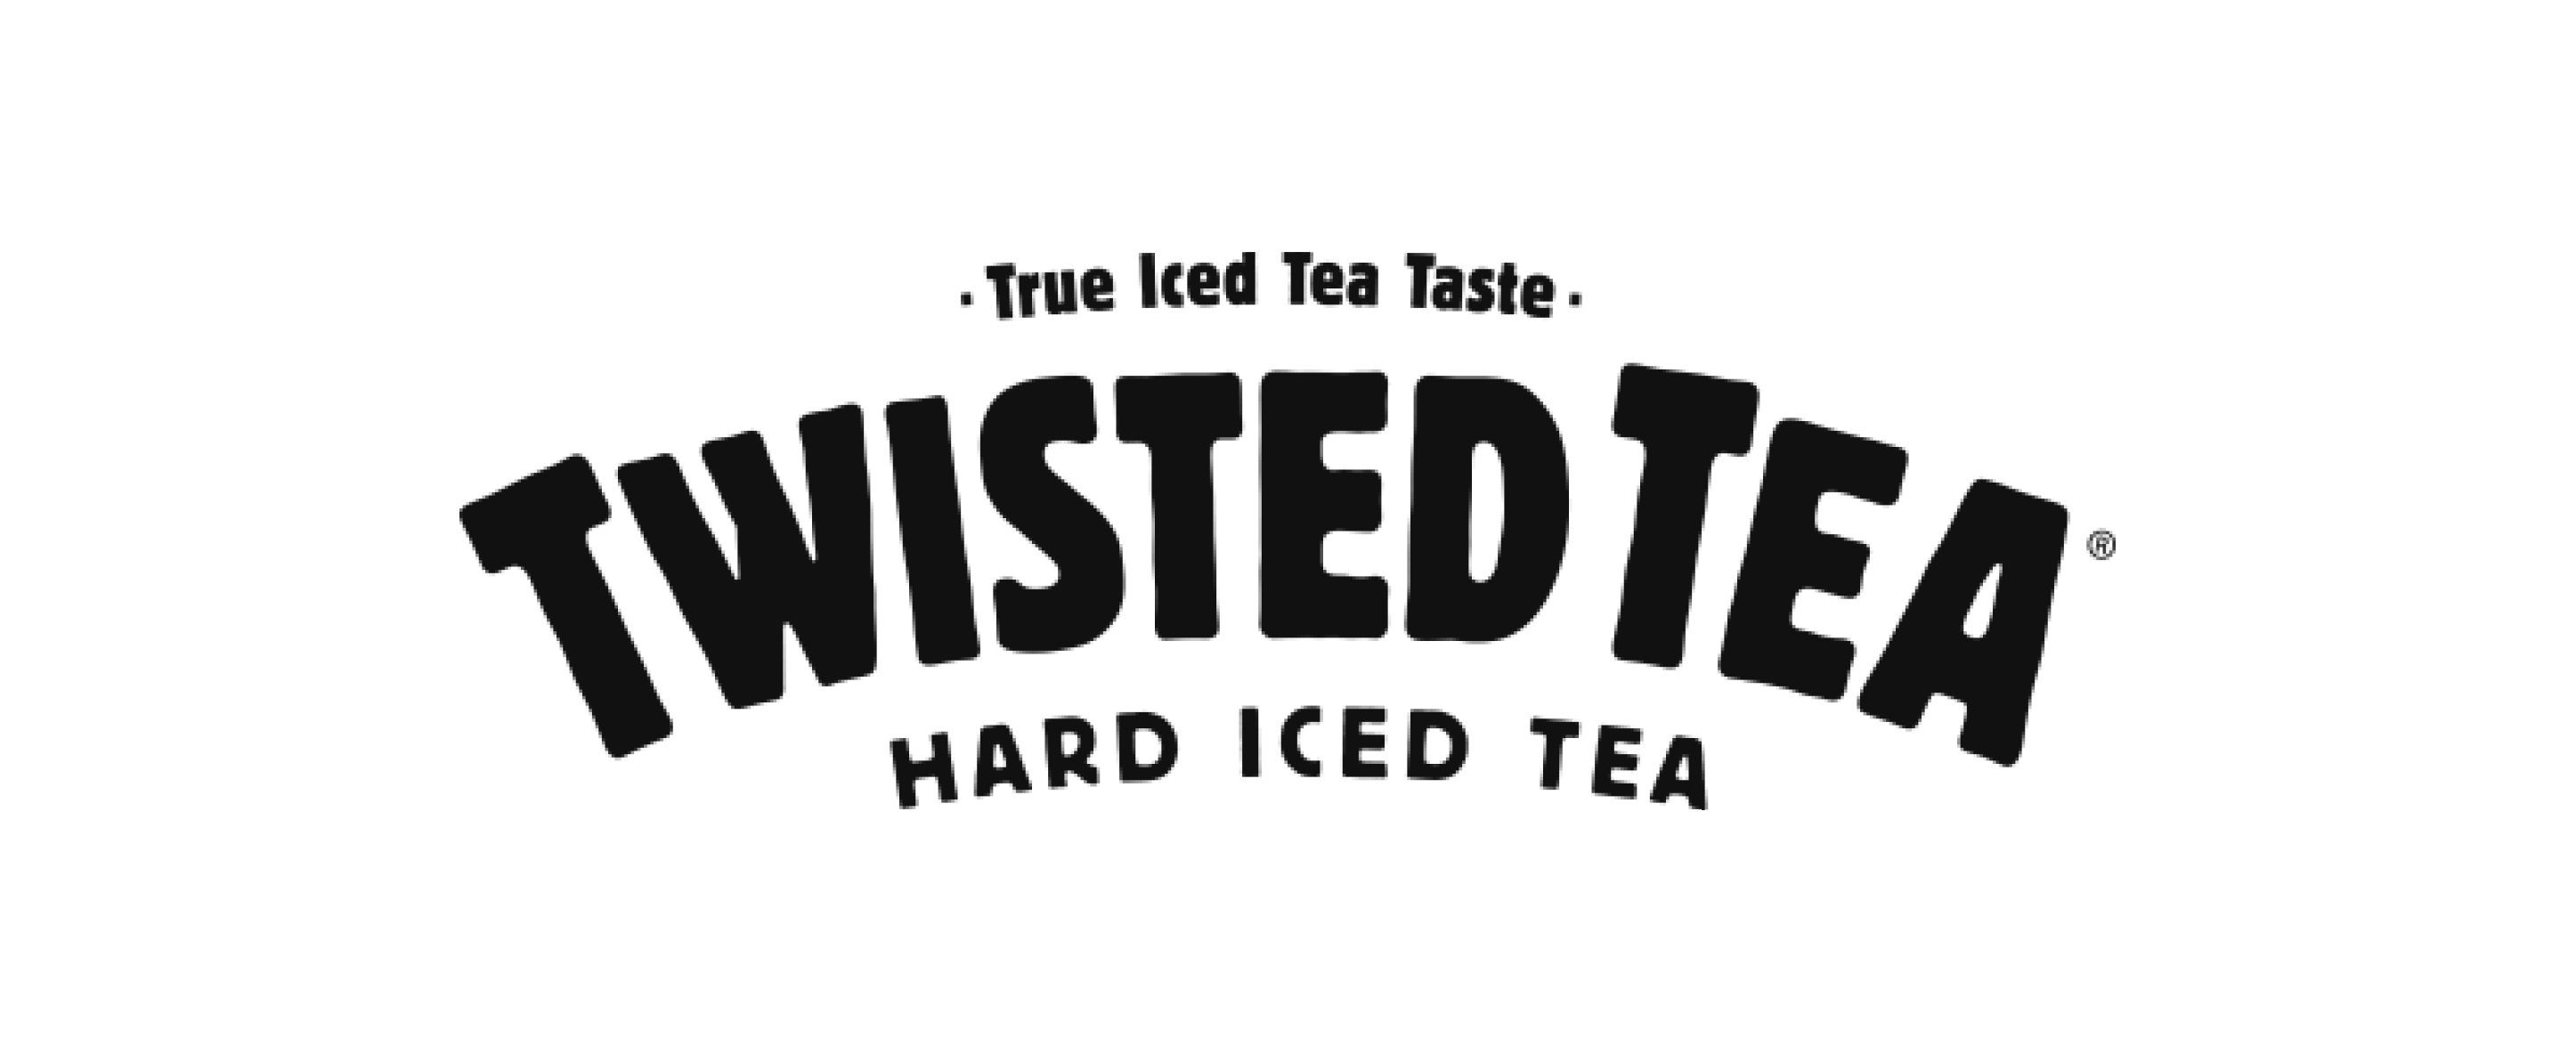 Twisted_tea: True Iced Tea Taste